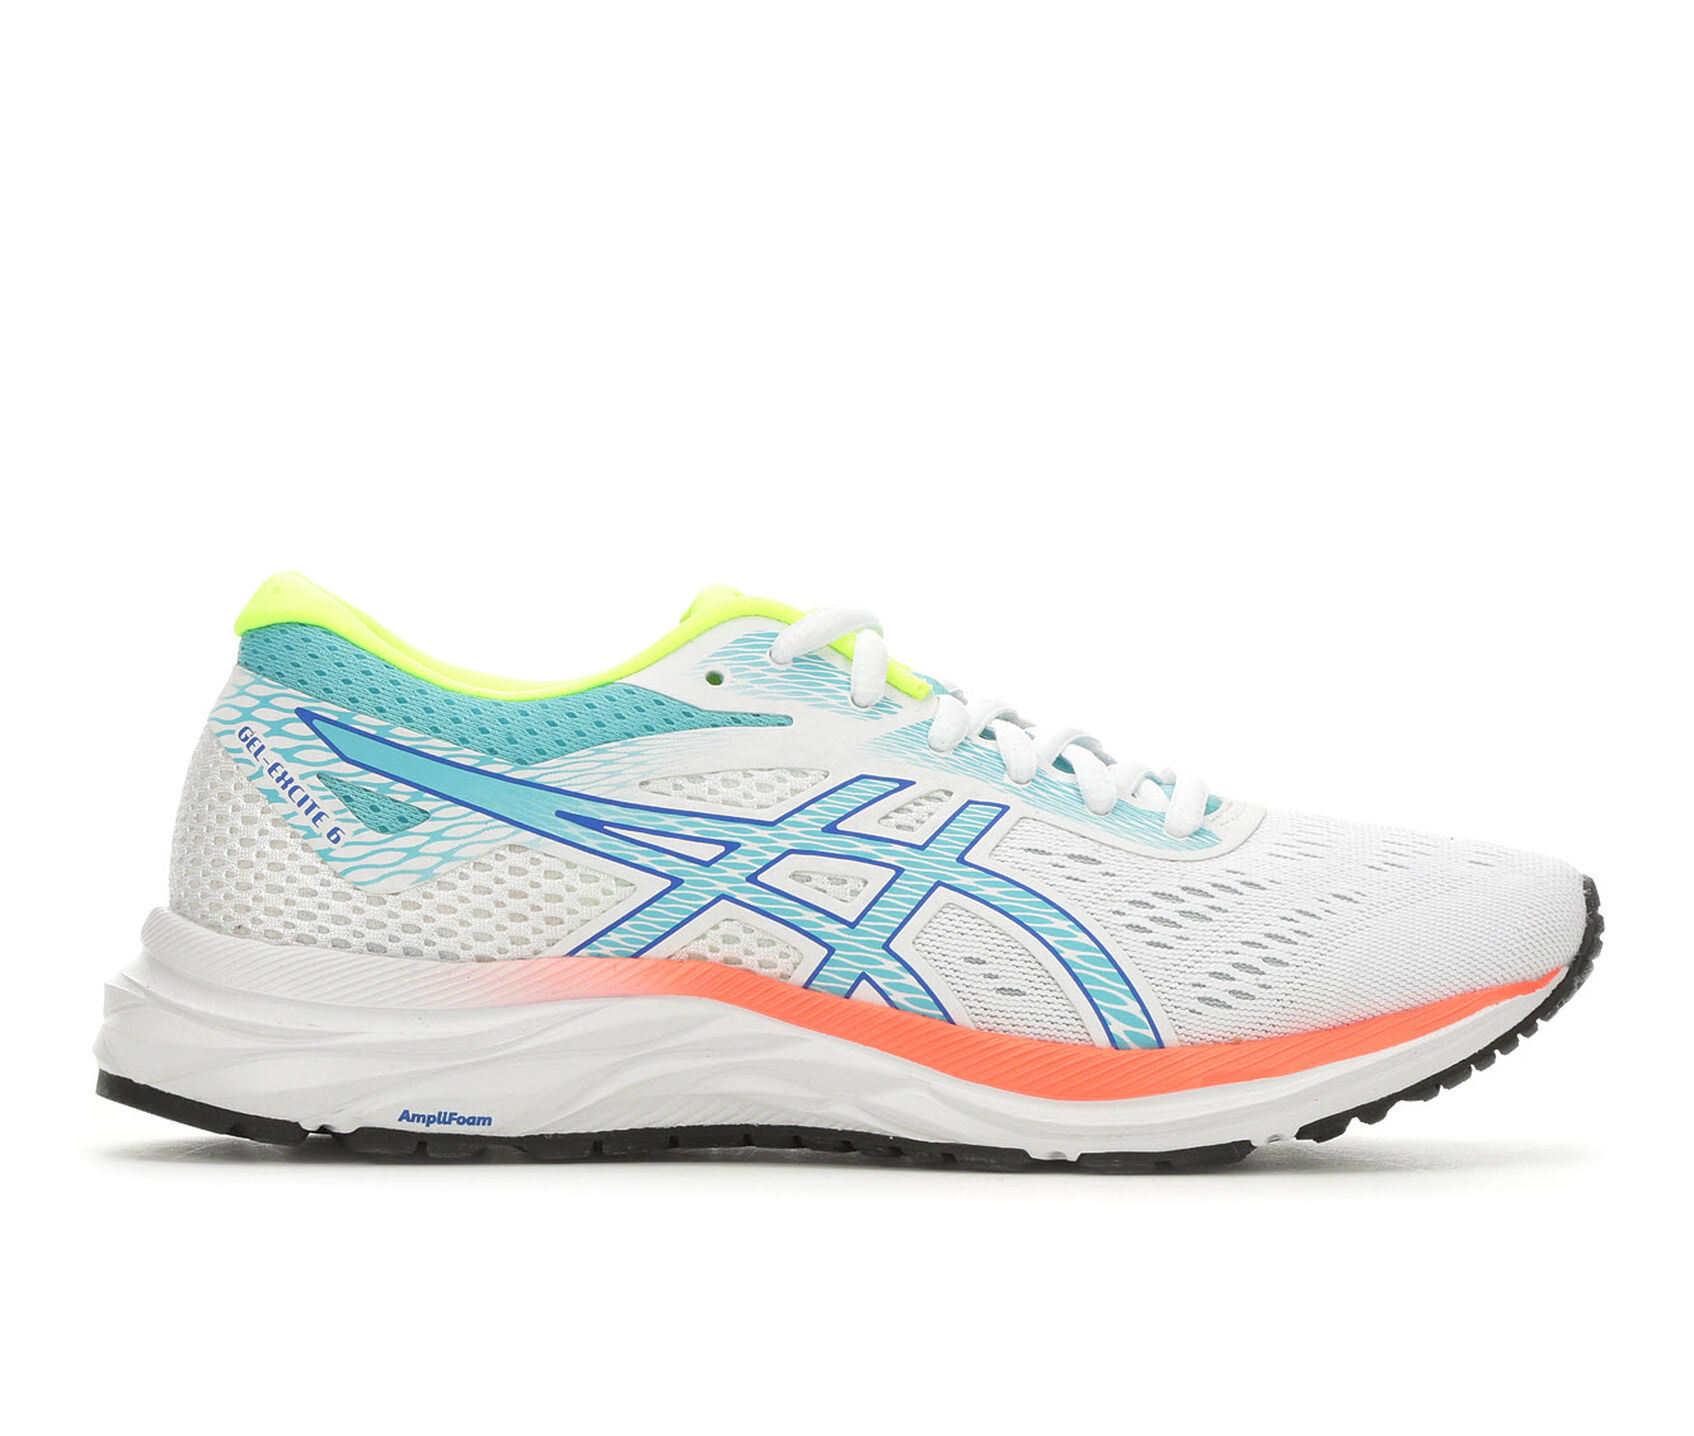 926a534cadb078 Women's ASICS Gel Excite 6 SP Running Shoes | Shoe Carnival